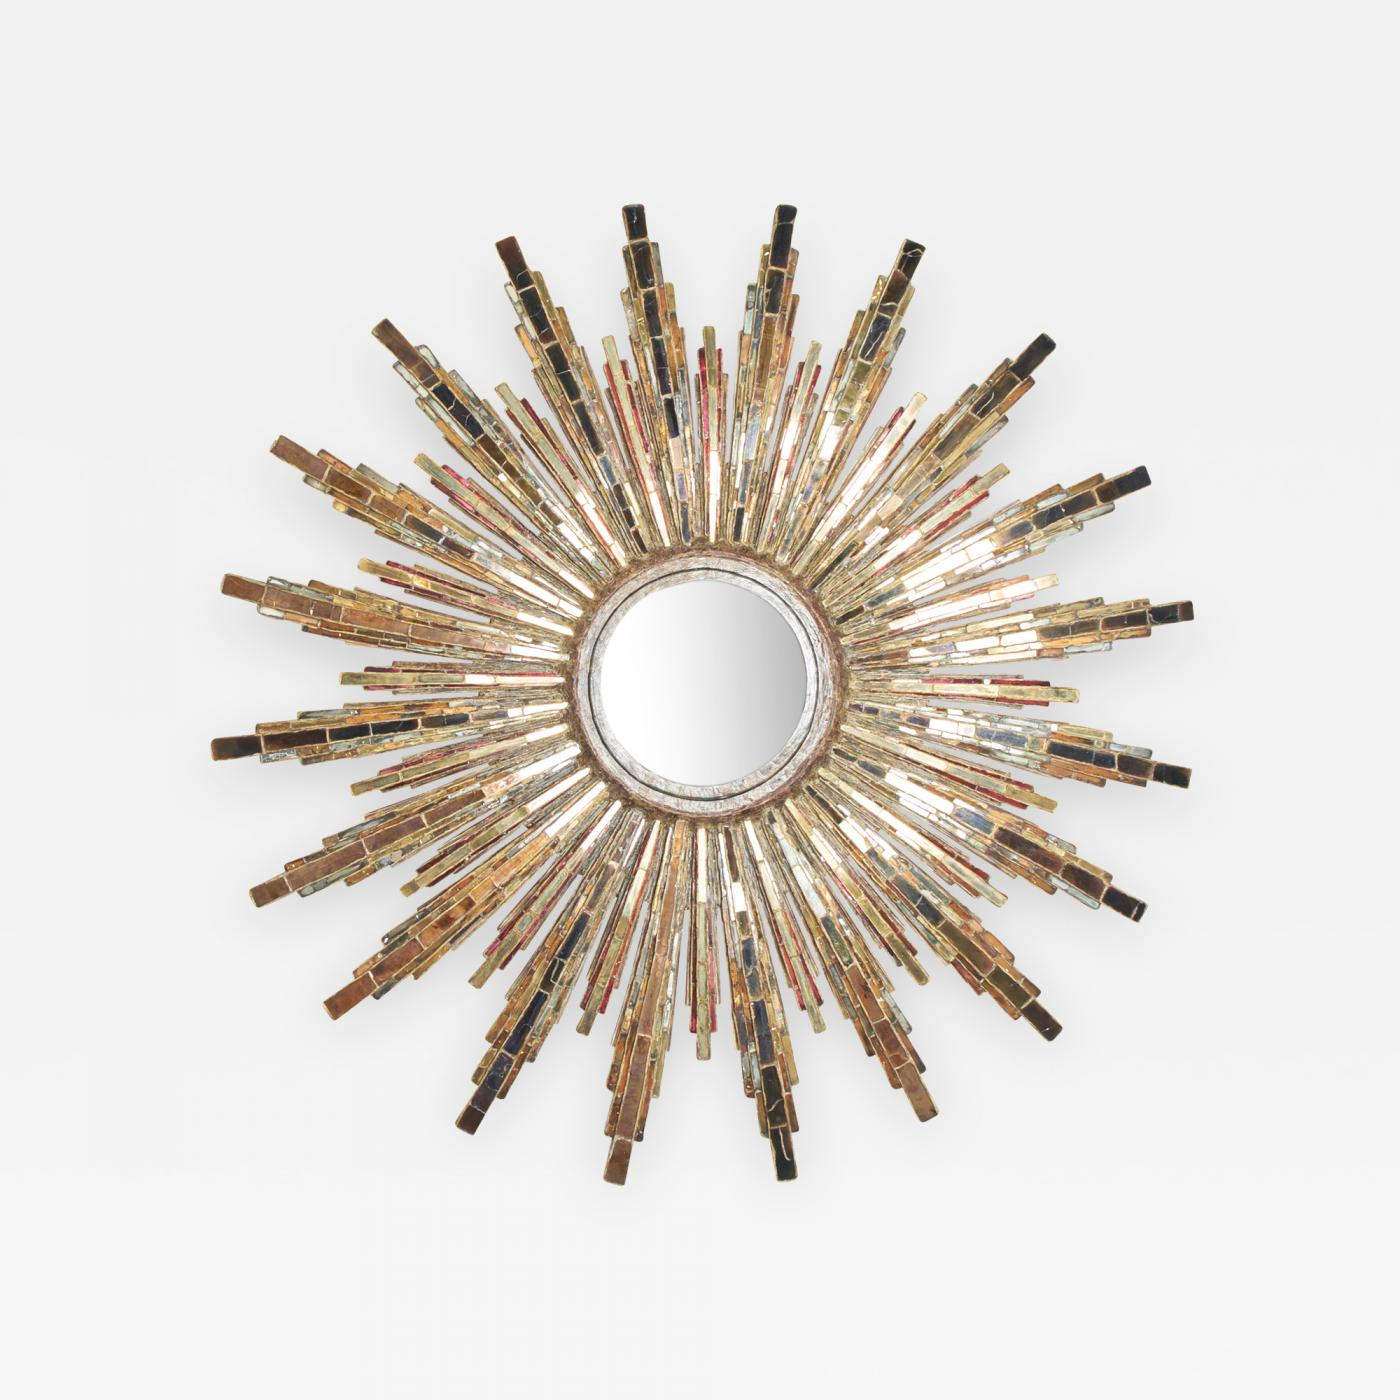 Line vautrin roi soleil wall mounted mirror listings decorative arts mirrors wall mirrors amipublicfo Choice Image